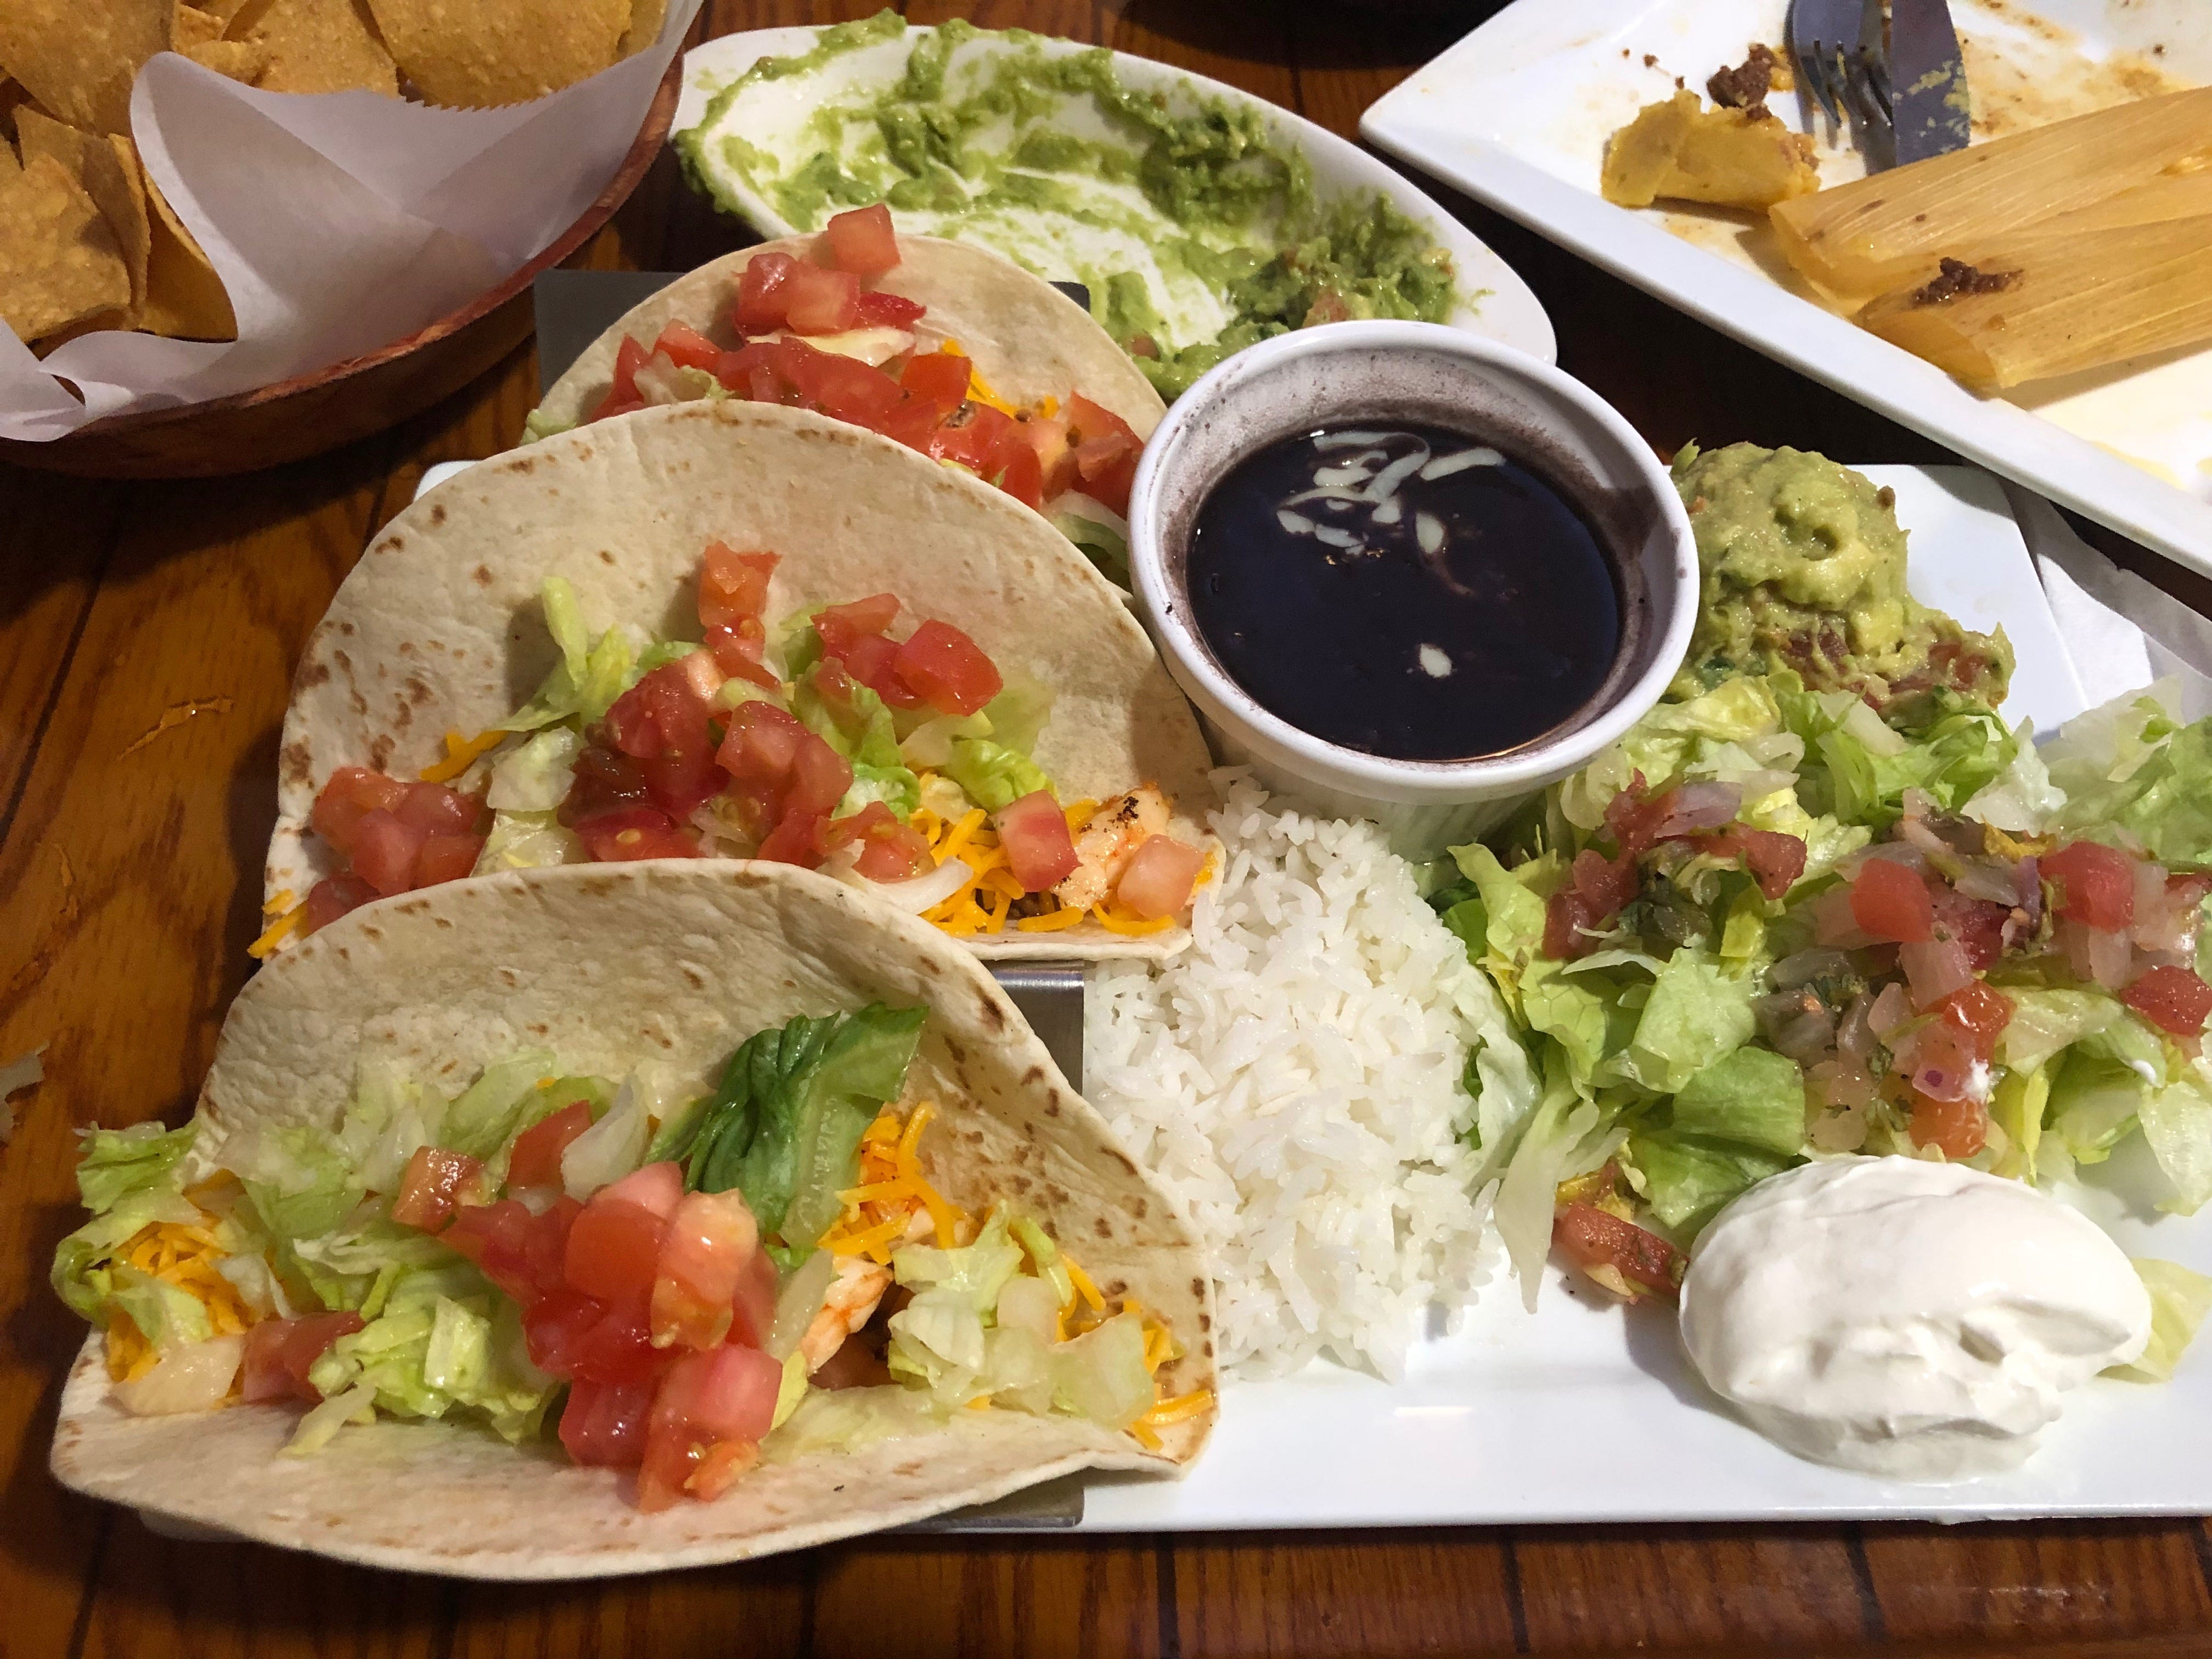 Shrimp tacos come with buttery black beans, rice and all the fixings at El Meson Latin Cuisine Bar & Grill in Bonita Springs.